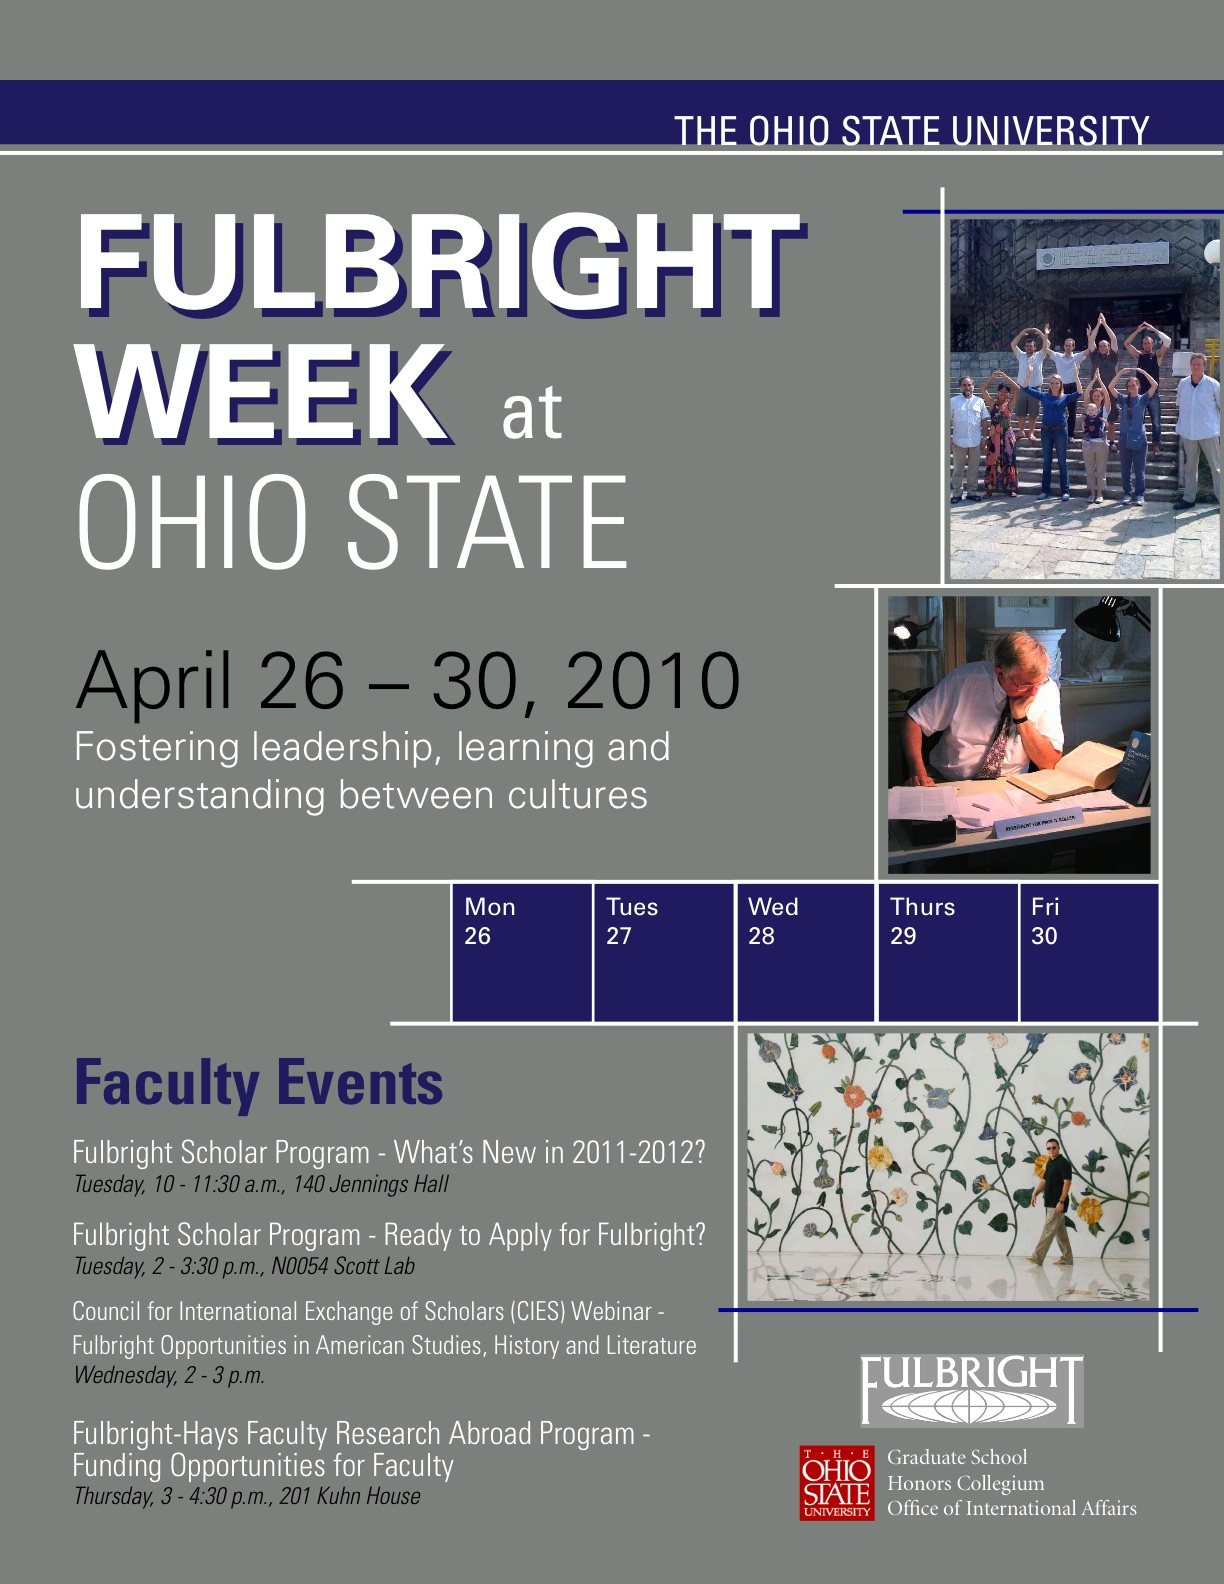 Why are you interested in The Ohio State University? essay help please?